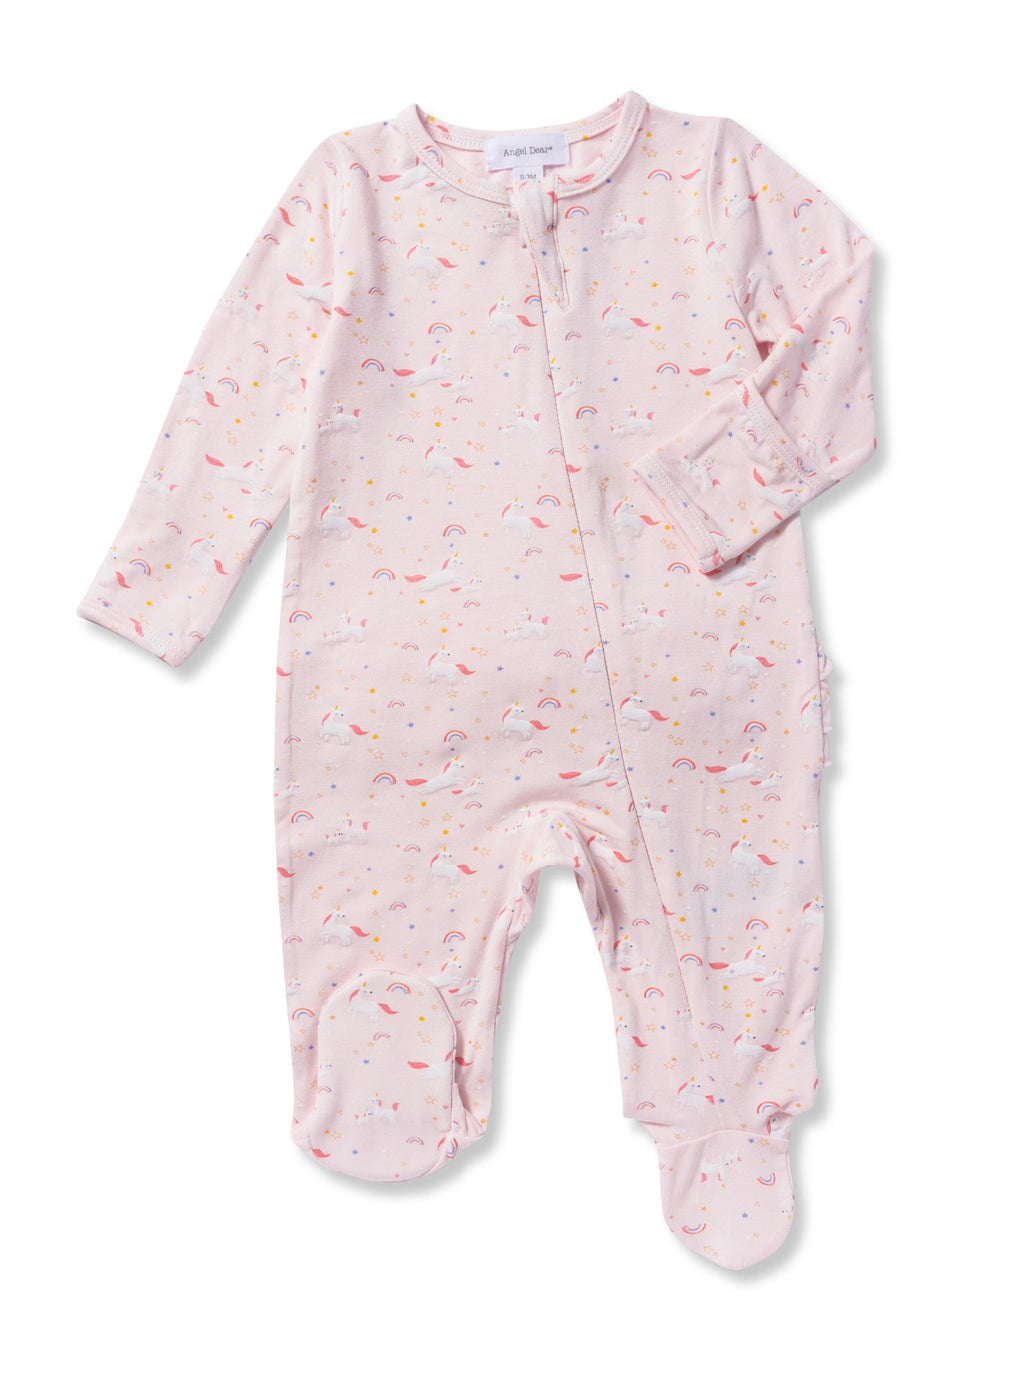 Angel Dear Unicorn Dreams Zipper Footie